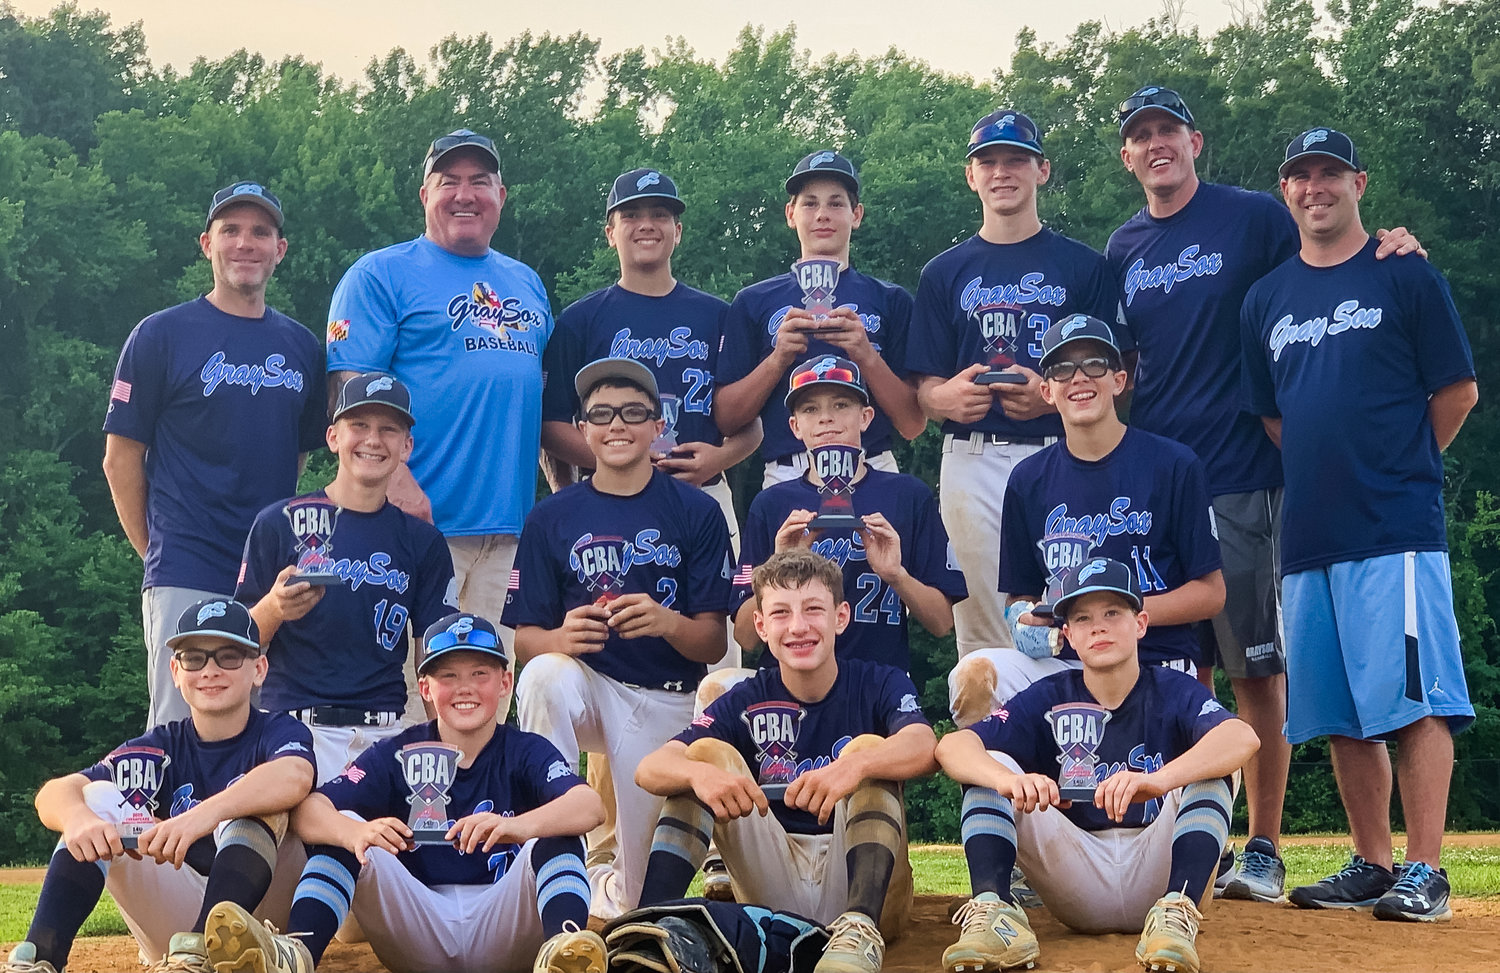 The Lake Shore 13U Gray Sox played up in age and still won the Chesapeake Baseball Association 14U championship.